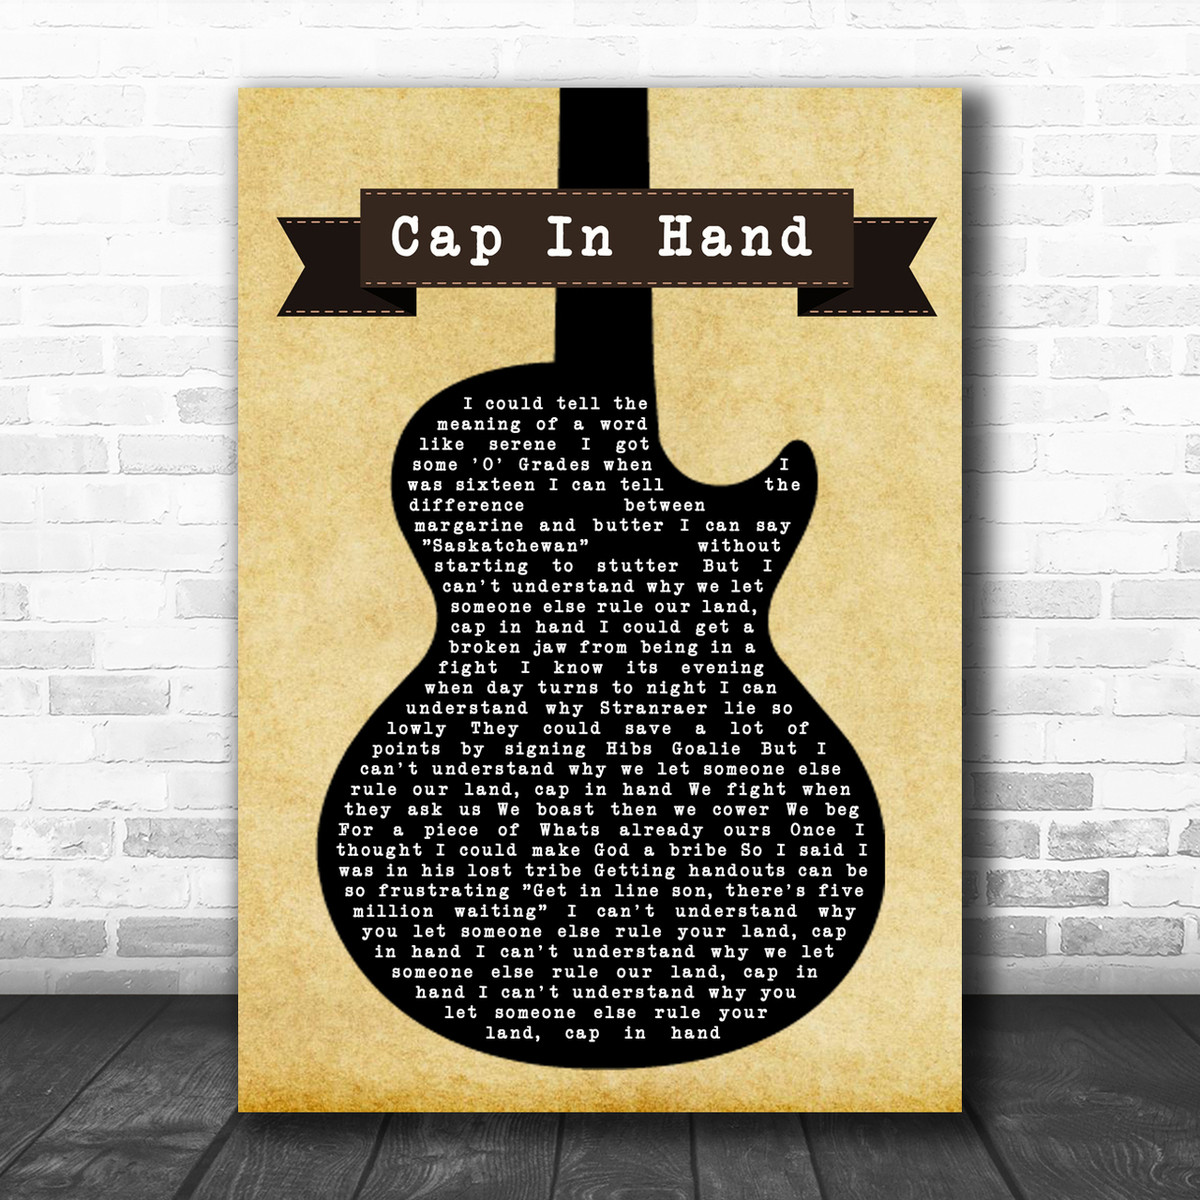 Cap in Hand song lyrics in a guitar